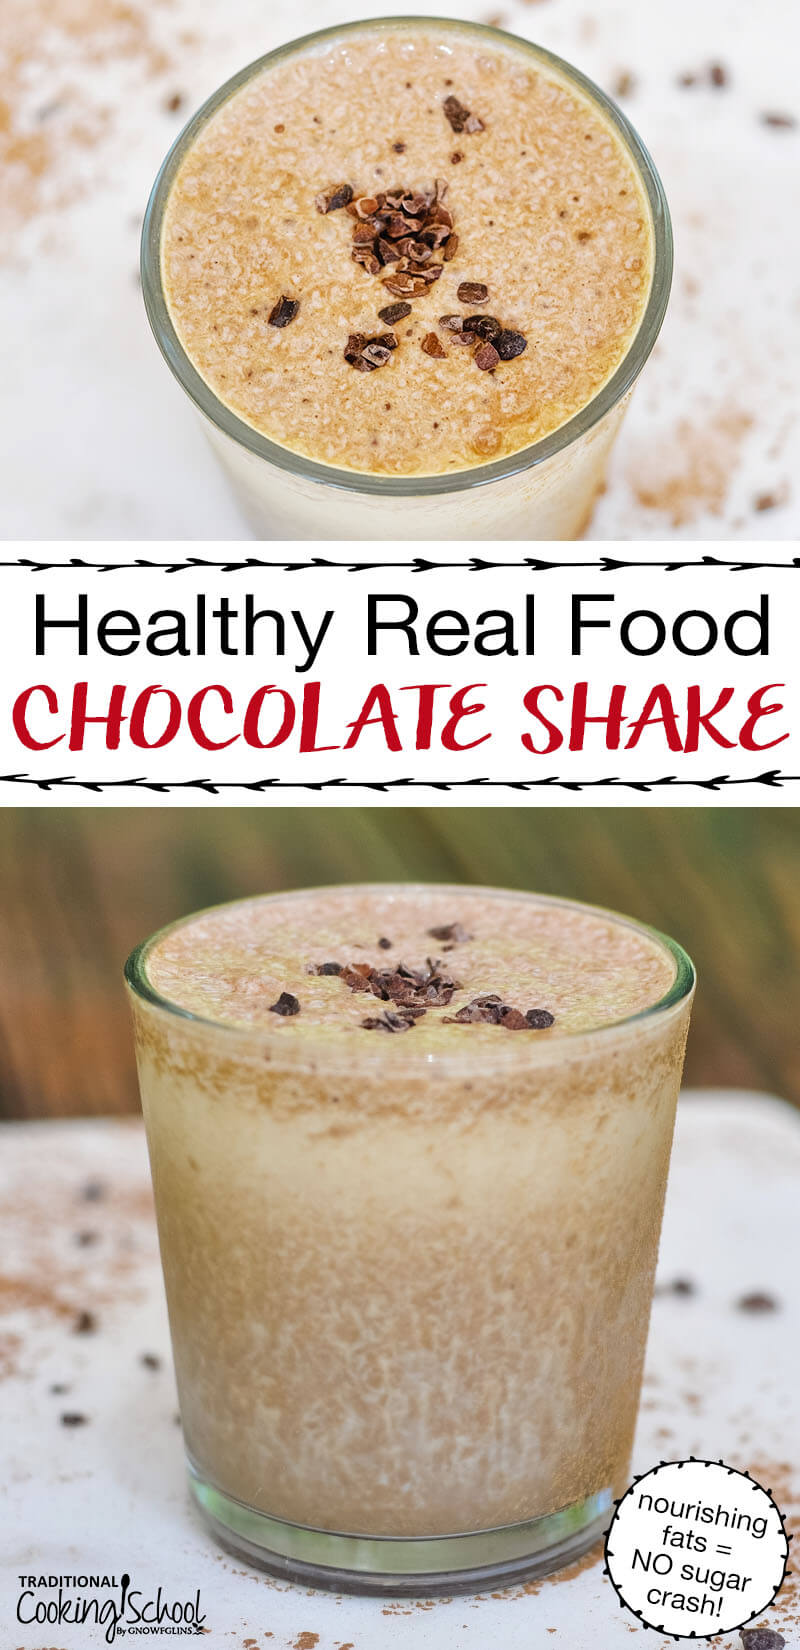 "photo collage of homemade chocolate milkshake garnished with a pinch of cacao nibs, with text overlay ""Healthy Real Food Chocolate Shake (nourishing fats = NO sugar crash!)"""